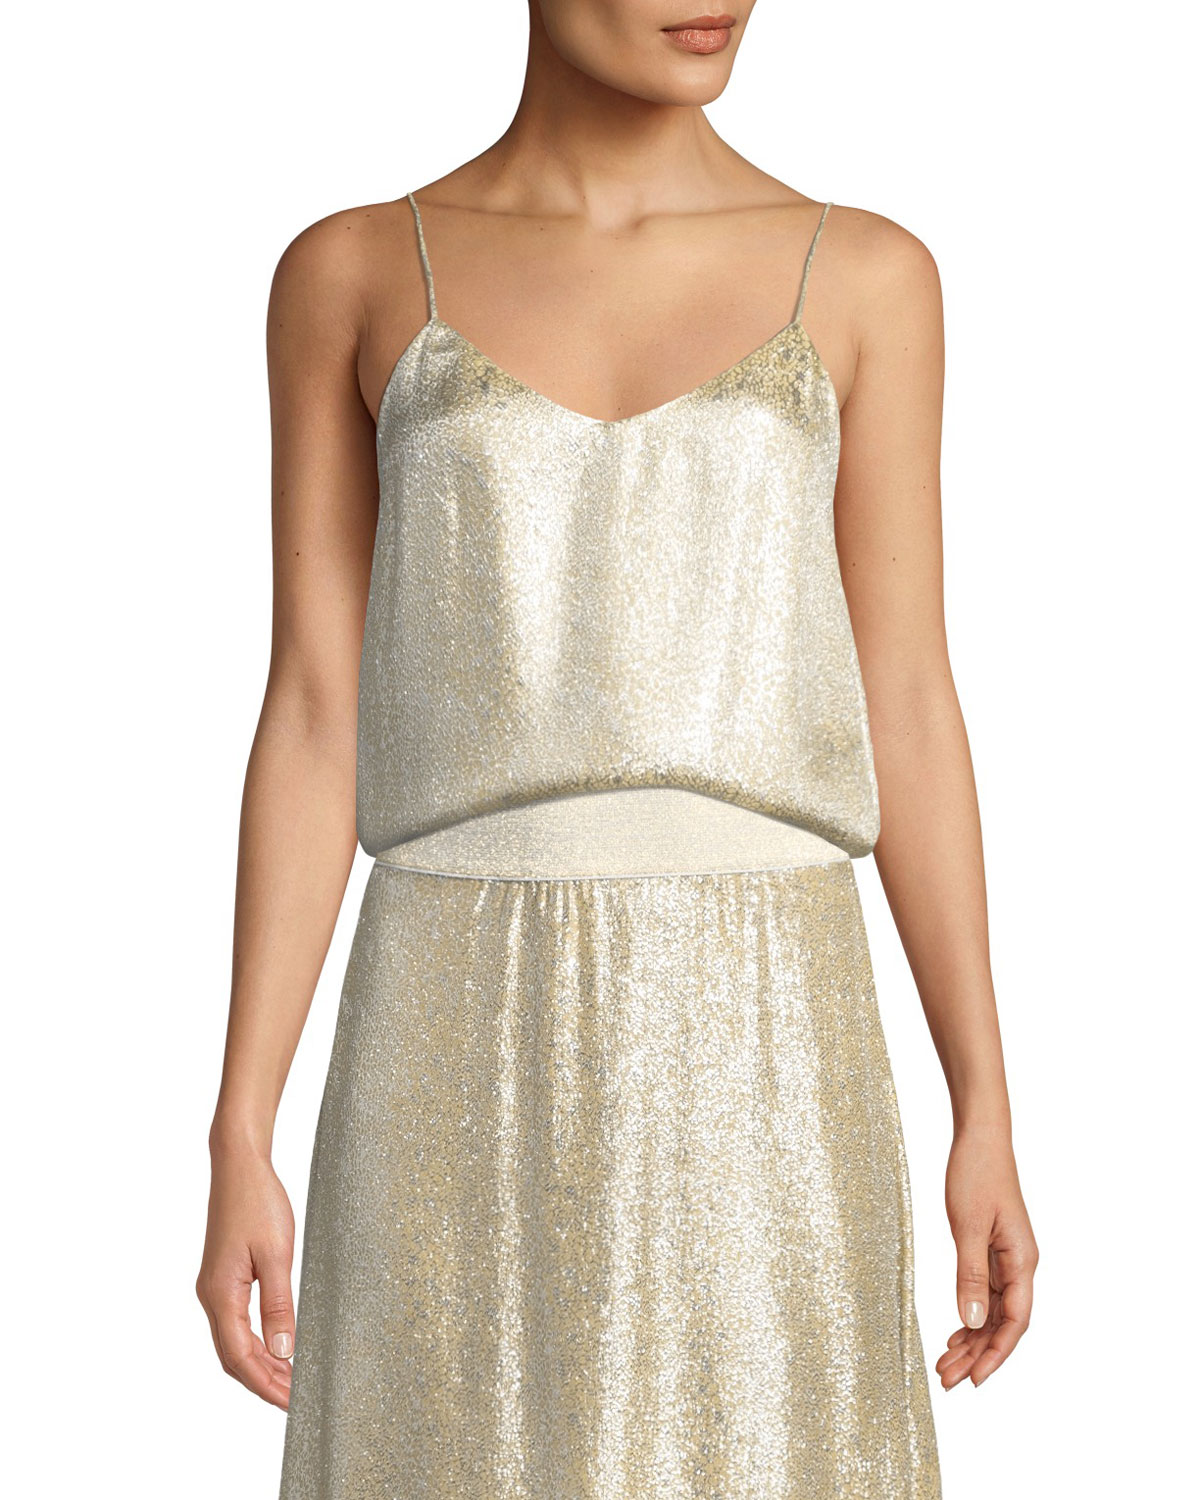 MARIE FRANCE VAN DAMME Metallic Silk V-Neck Cami Top in Yellow